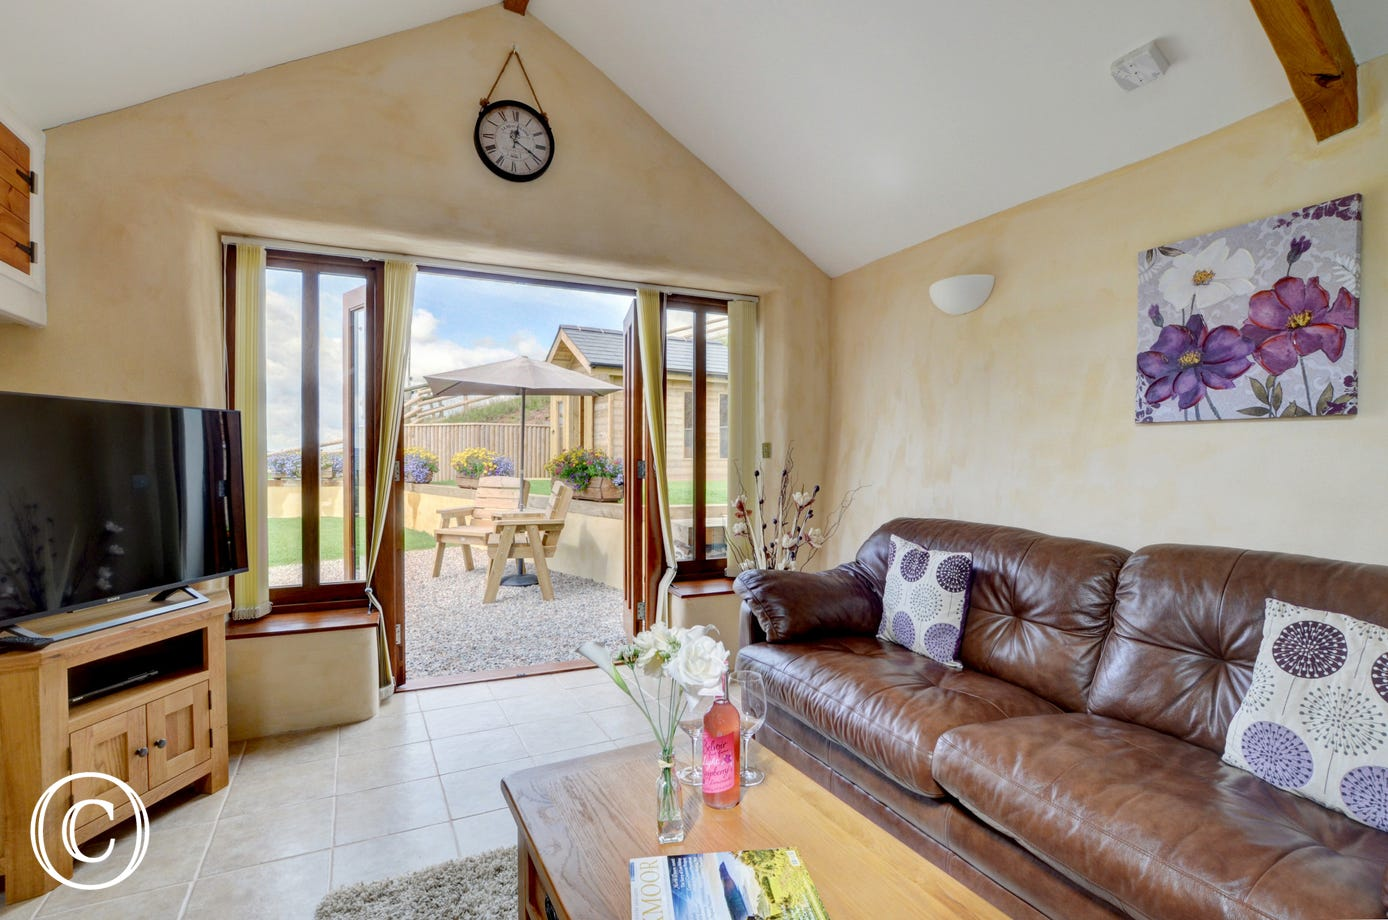 Comfortable seating and large TV in the seating area, with patio doors giving access to the garden